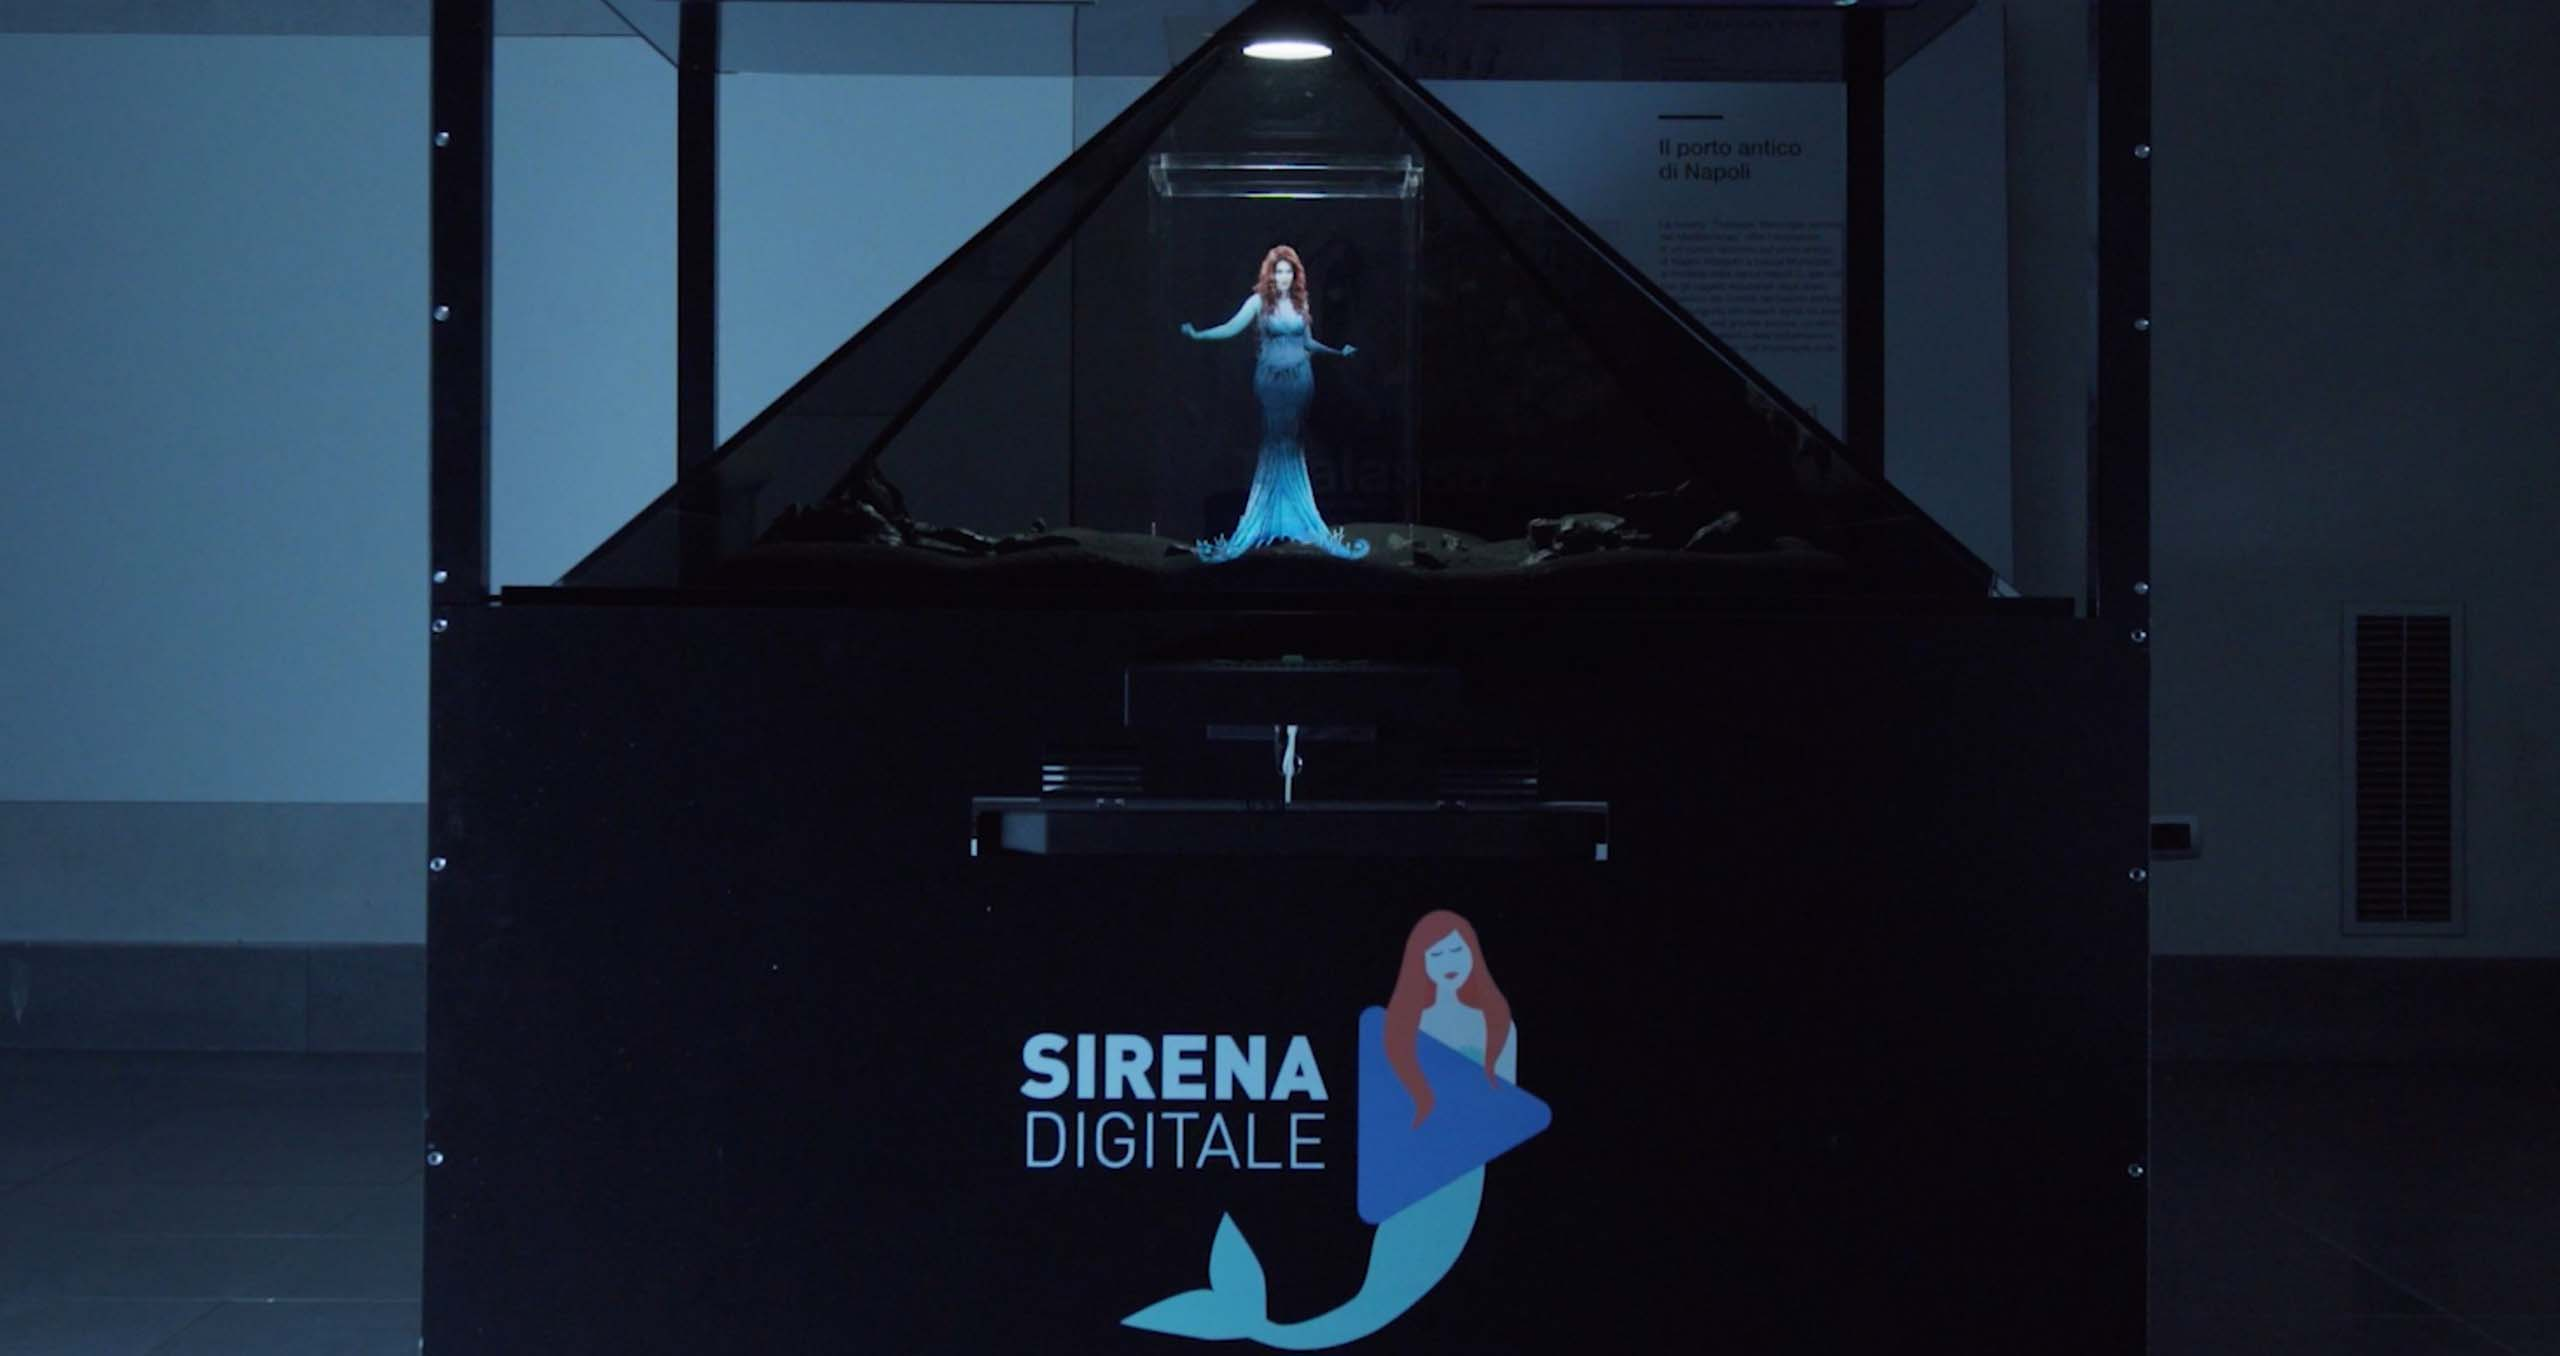 Sirena Digitale Upside Production